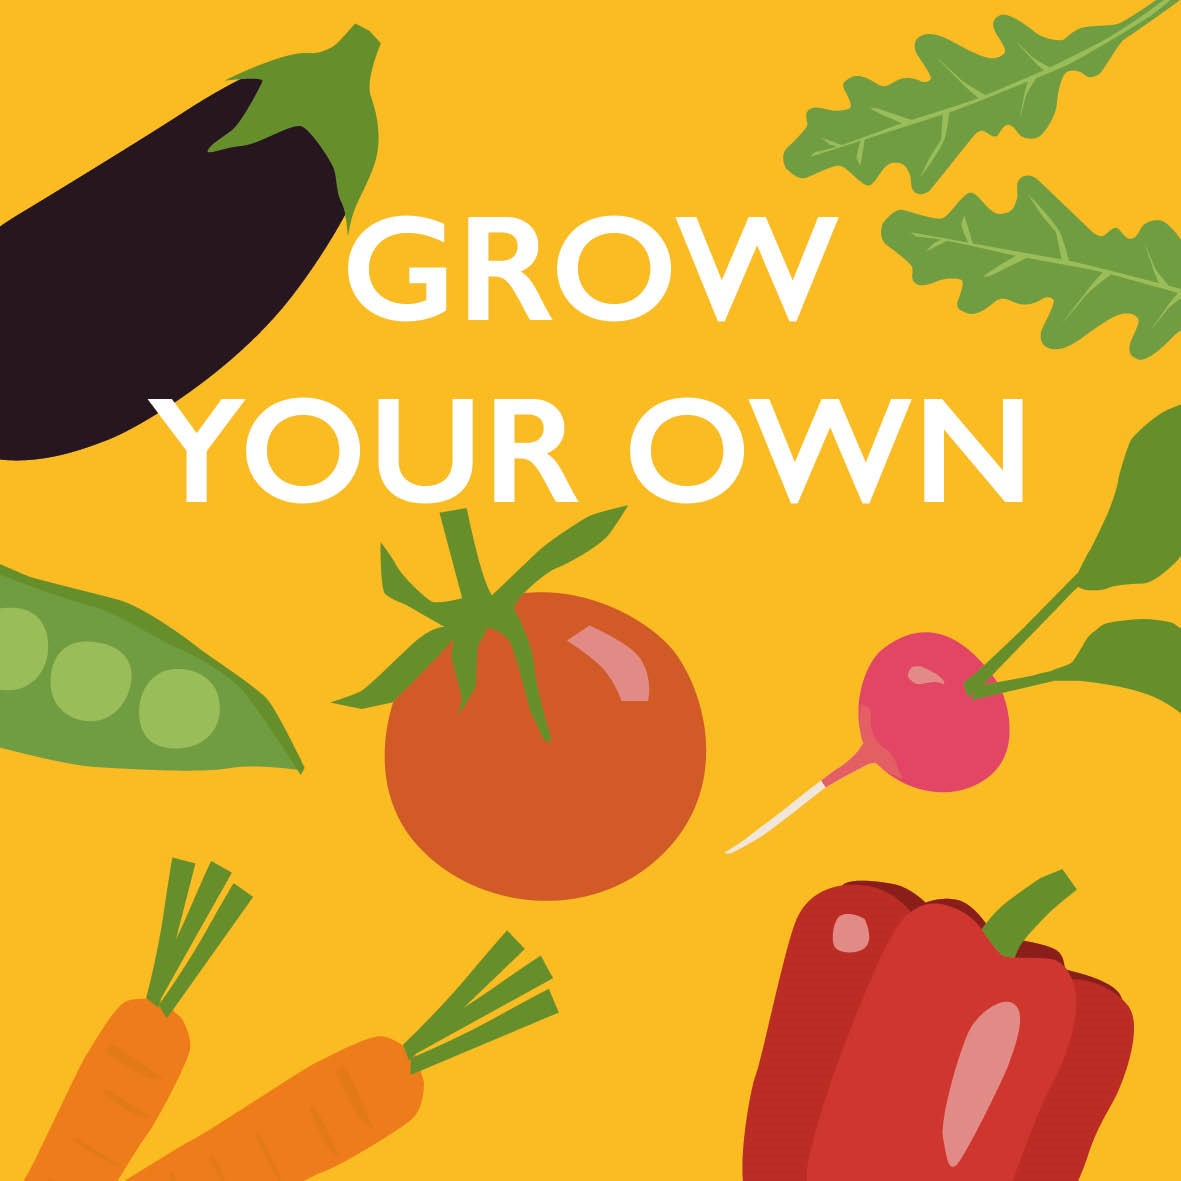 Grow your own veg yellow version